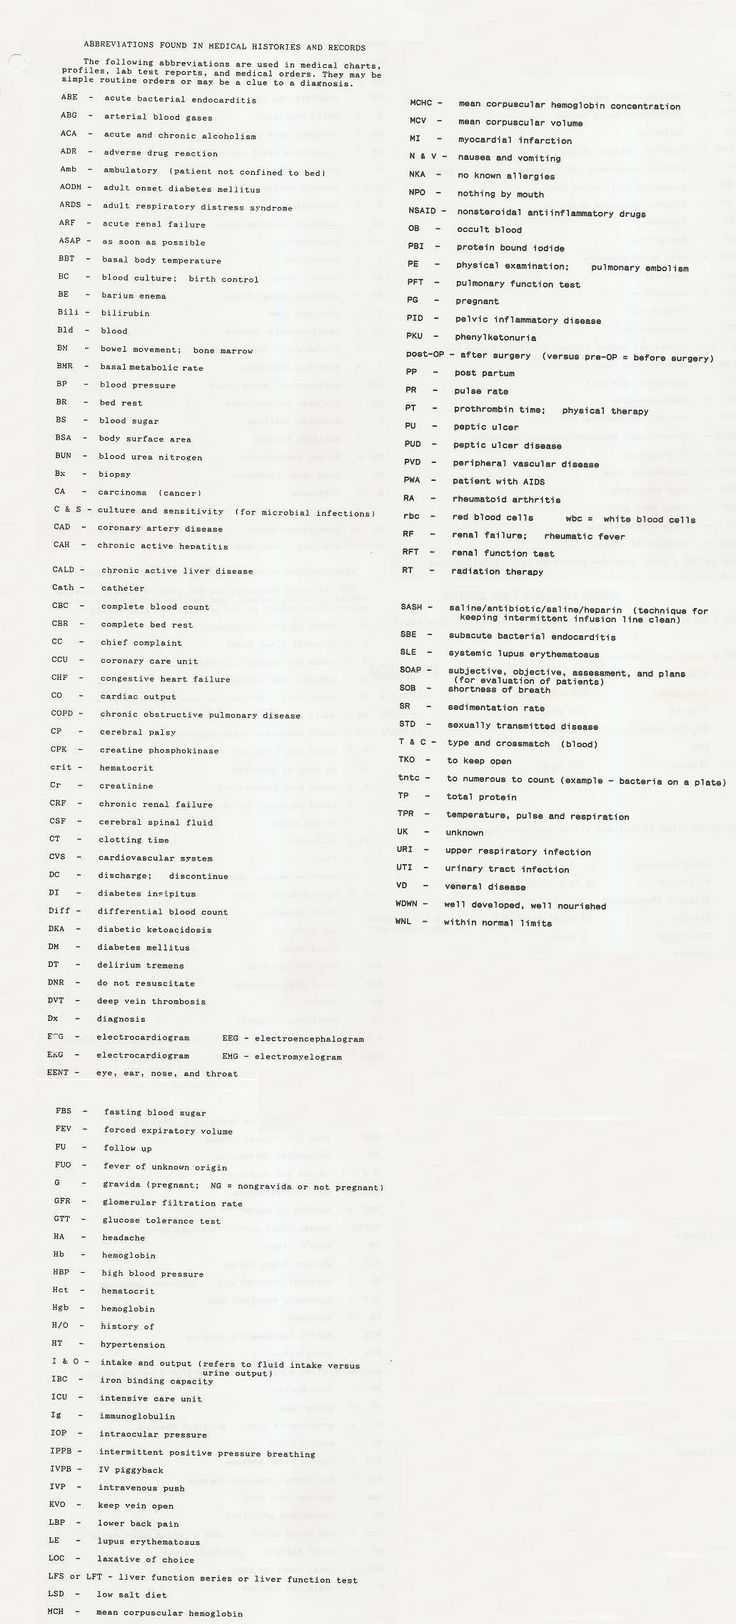 132 best medical terminology images on pinterest medical medical abbreviations and symbols disease state treatment guidelines medicaldrug information biocorpaavc Image collections